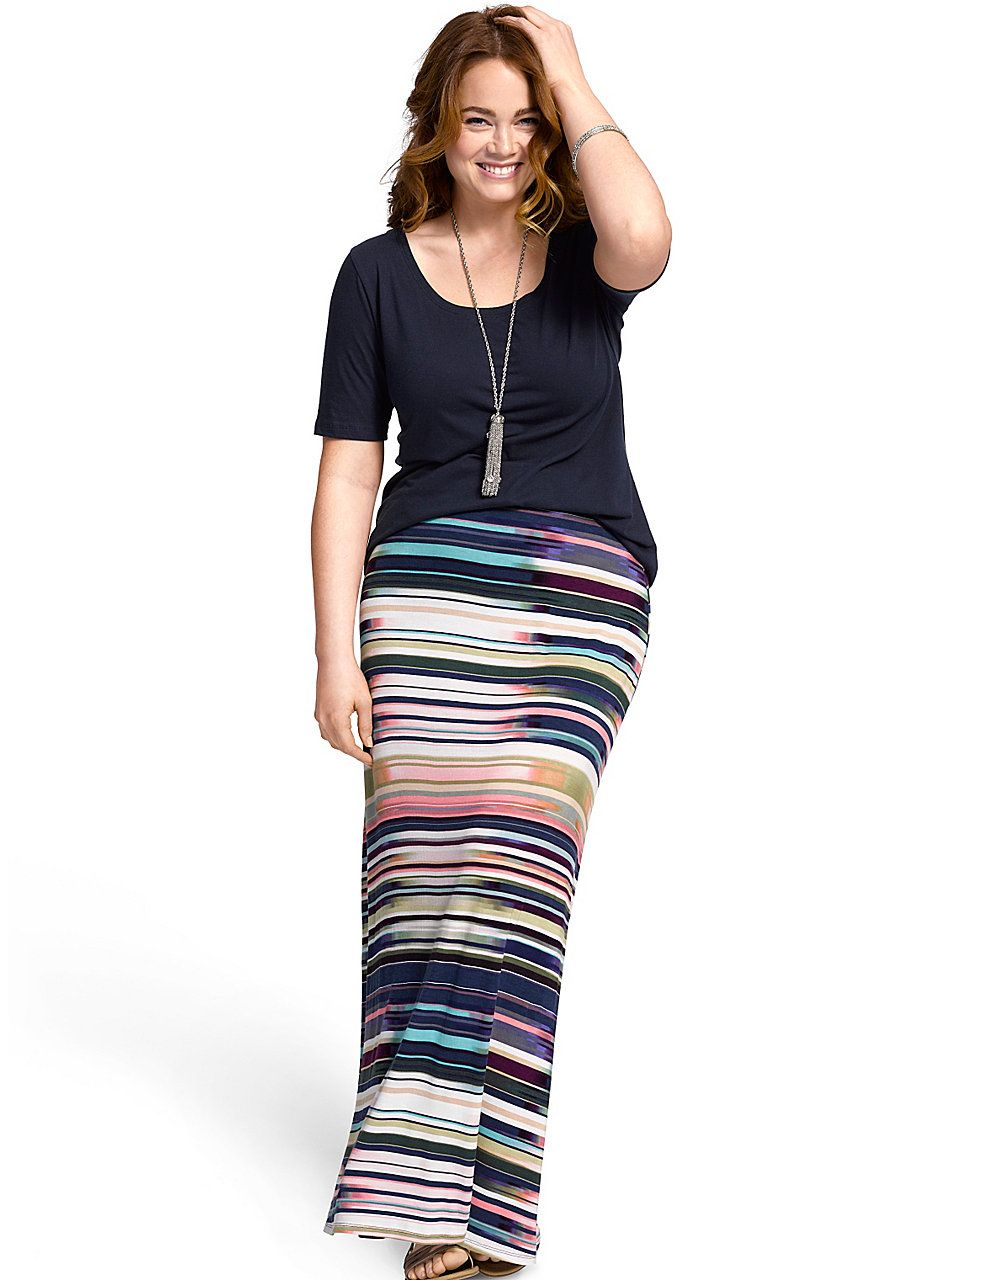 Striped maxi skirt by Lane Bryant | Lane Bryant | Plus Size ...